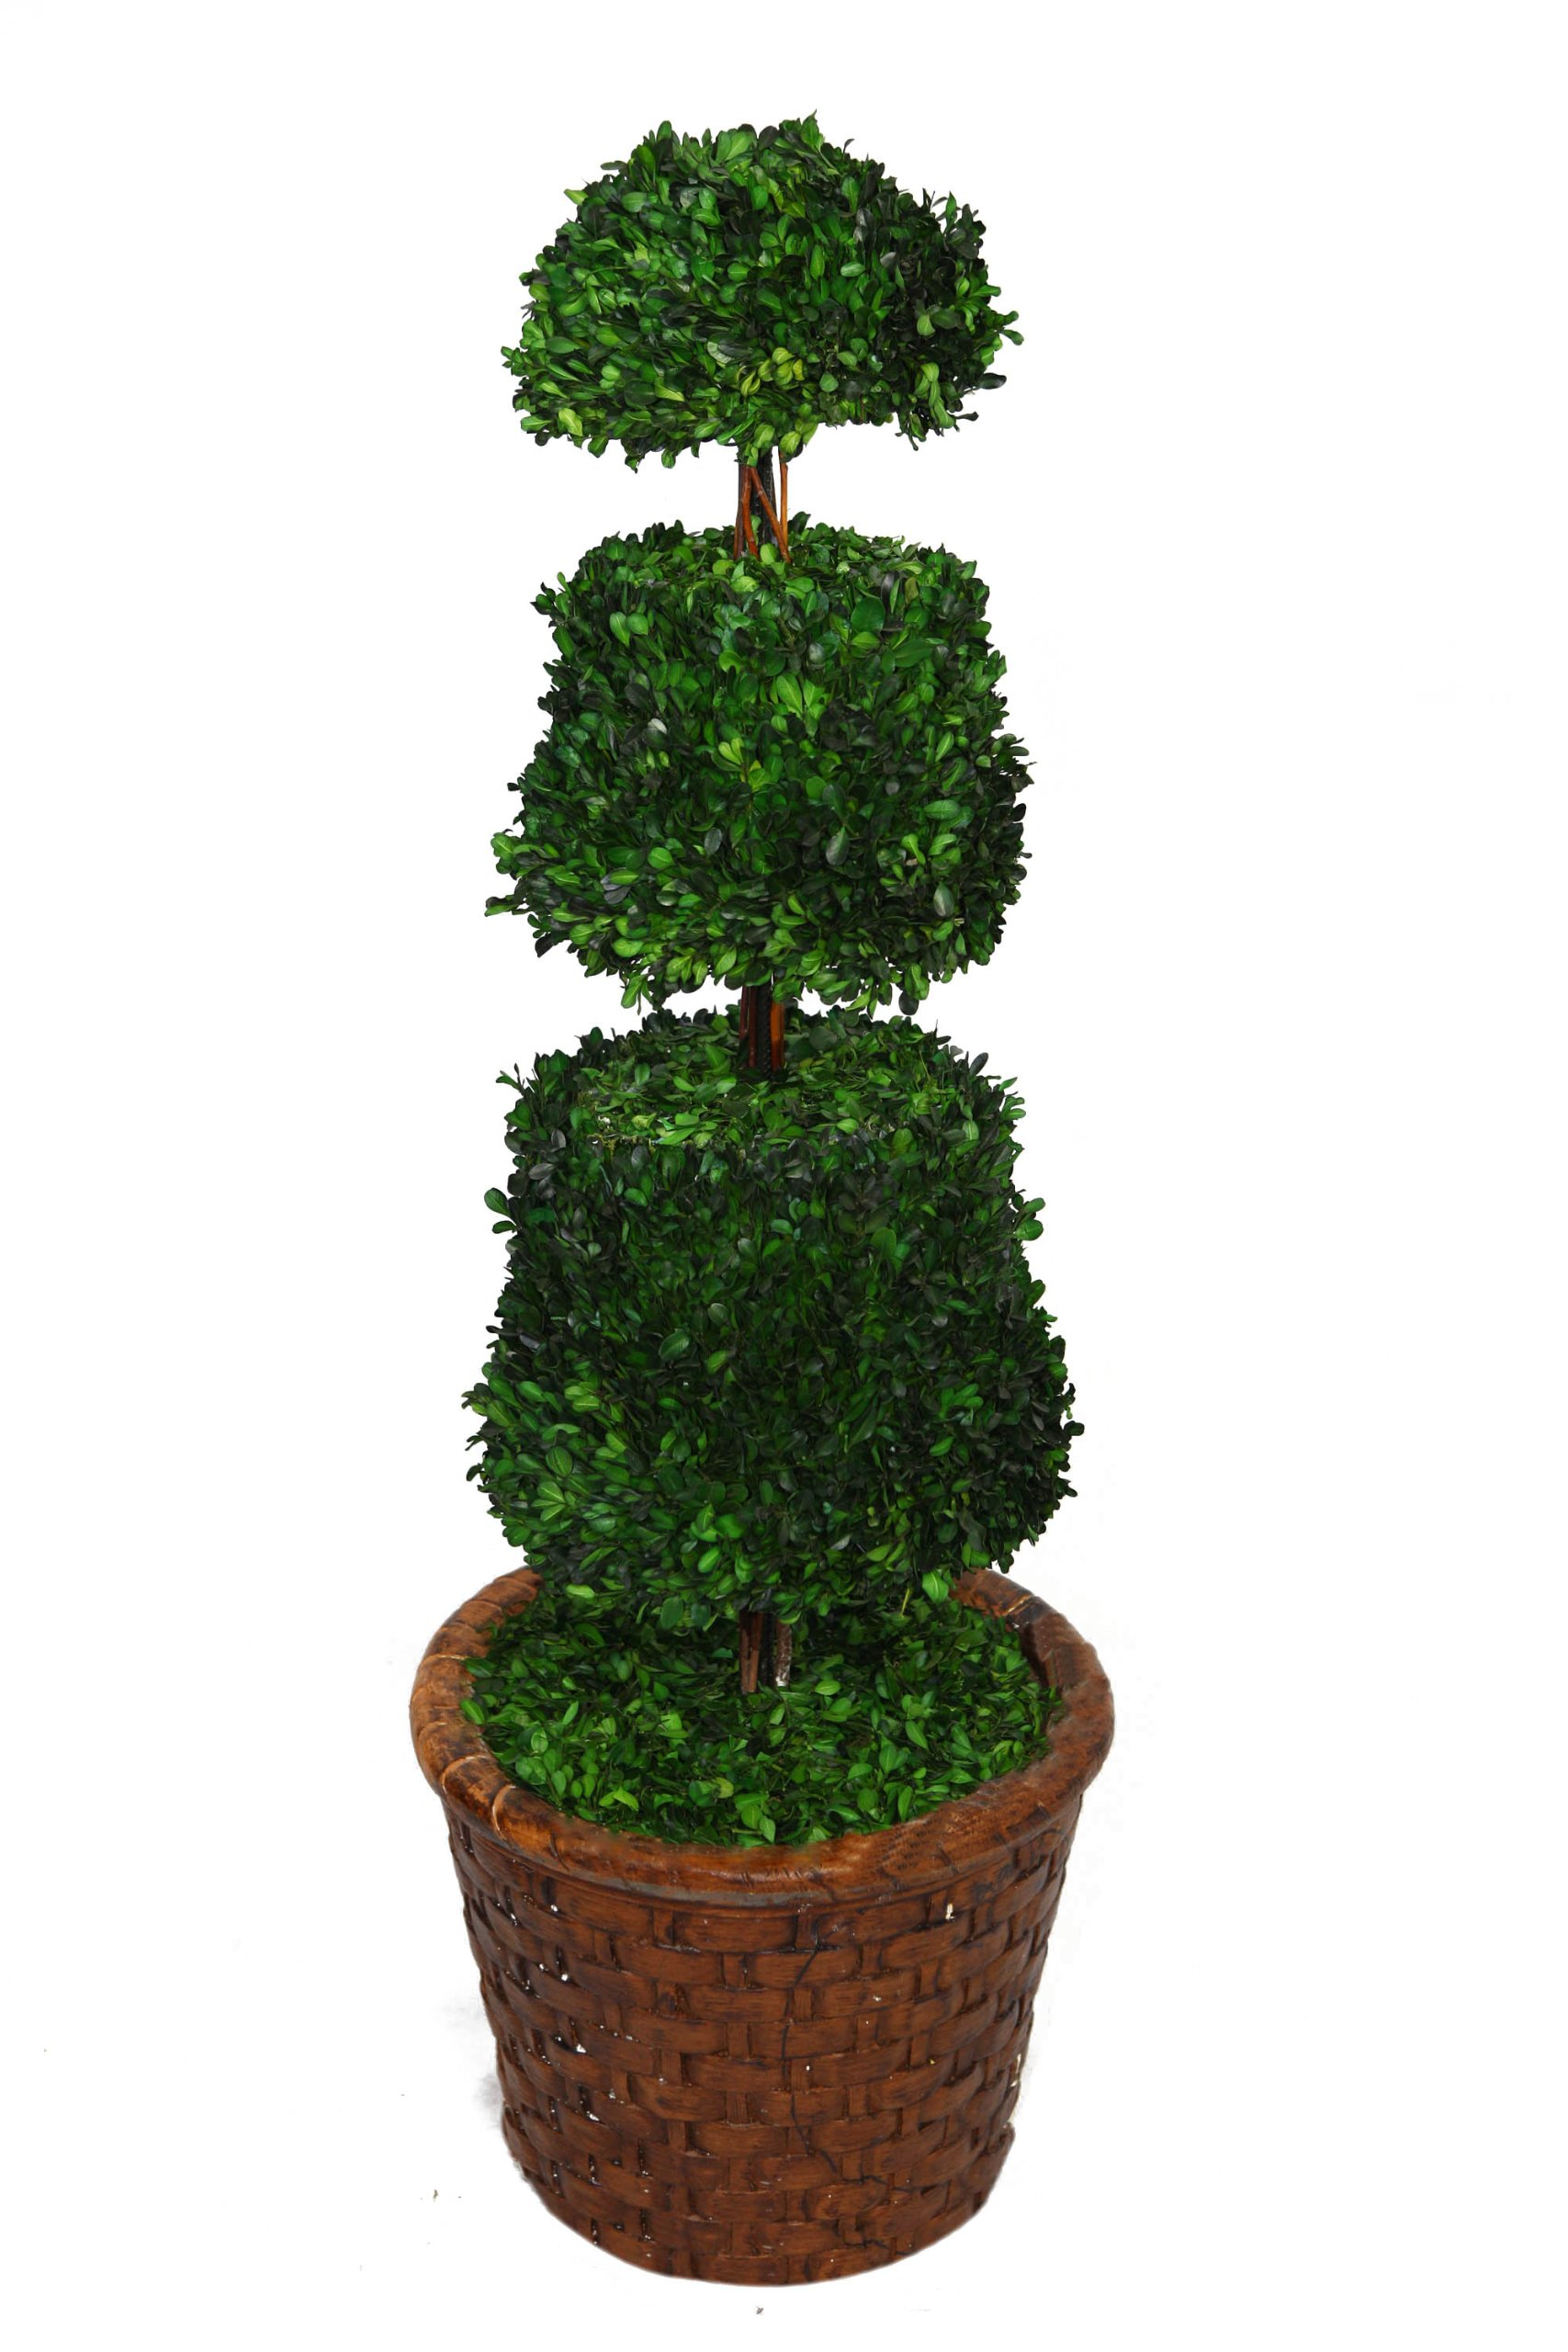 Laura Ashley 49 Inch Tall Preserved Natural Spiral Boxwood Cone Topiary in 17 Inch Fiberstone Planter by Laura Ashley (Image #2)